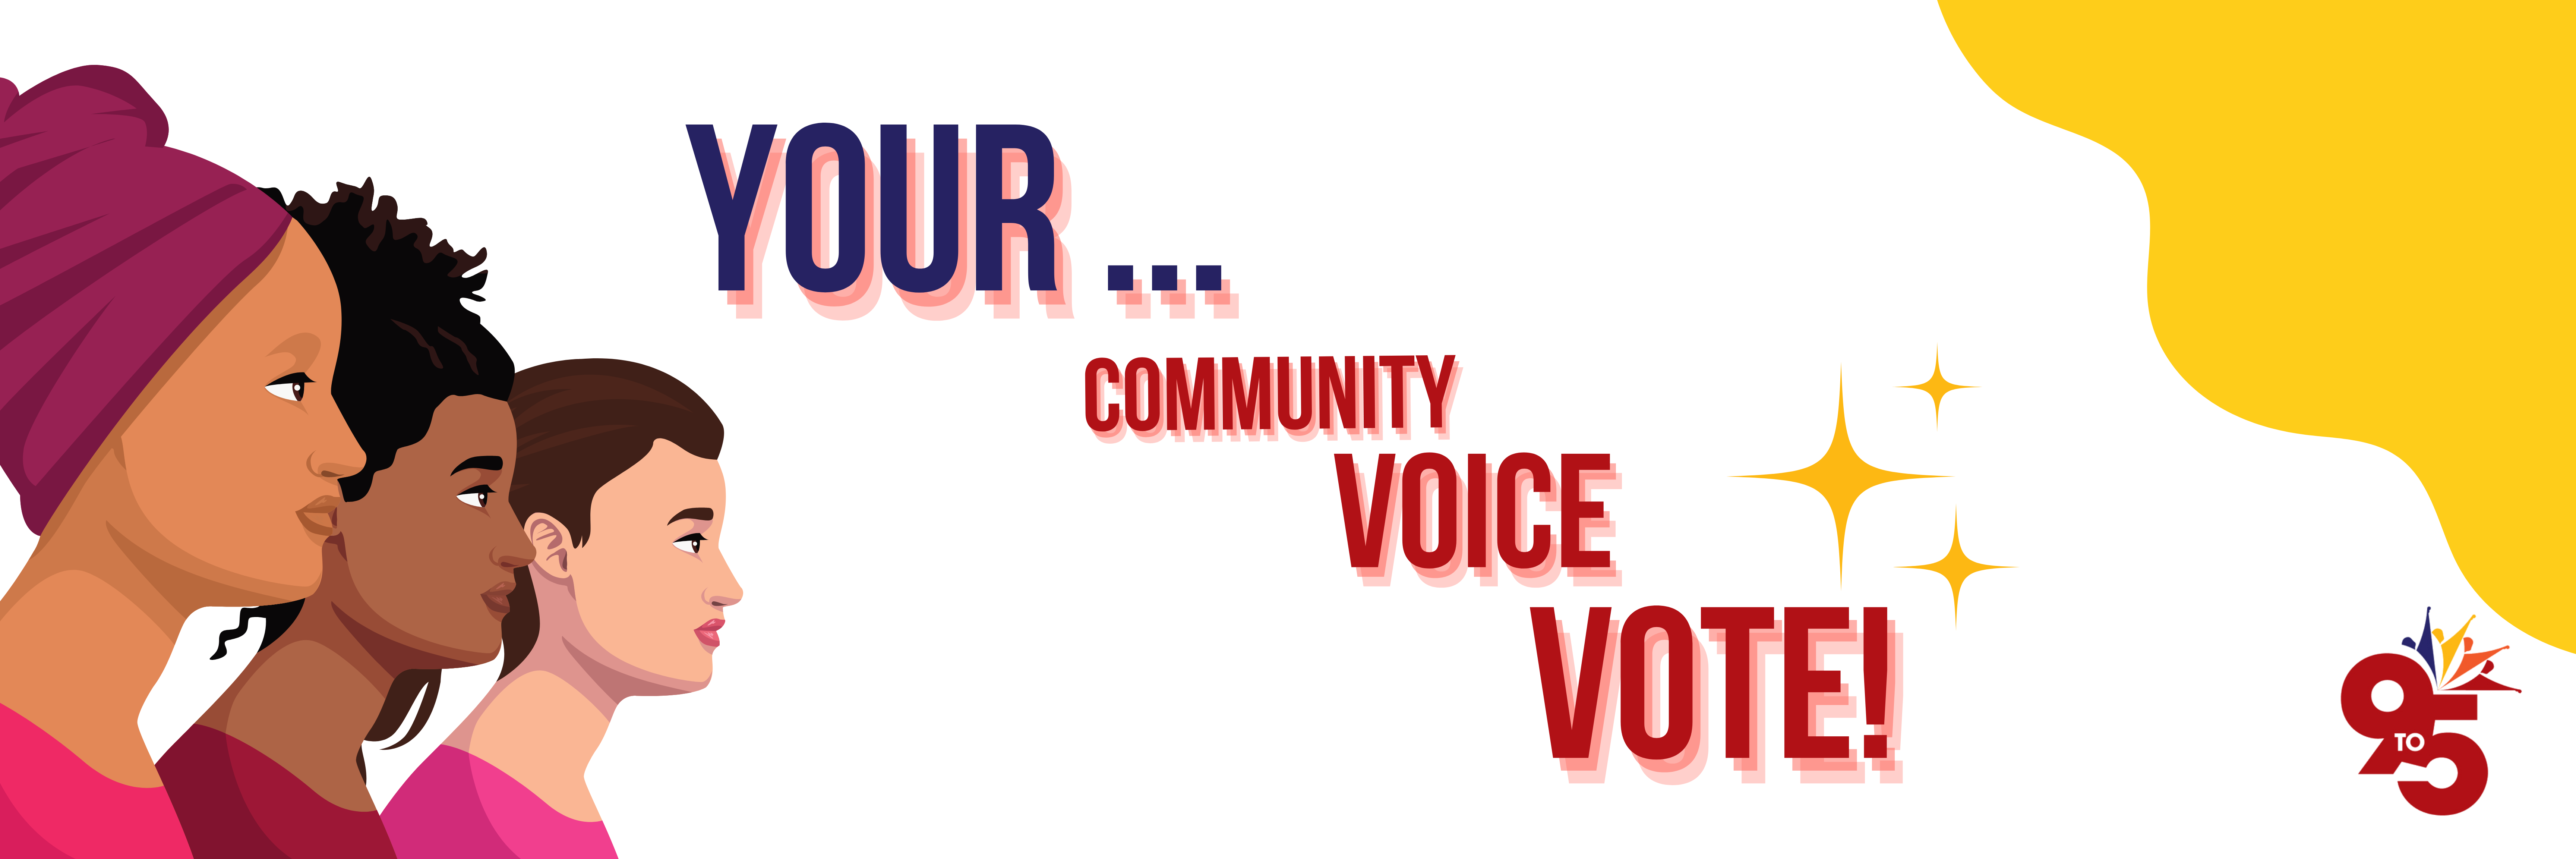 9to5 Voter Resources